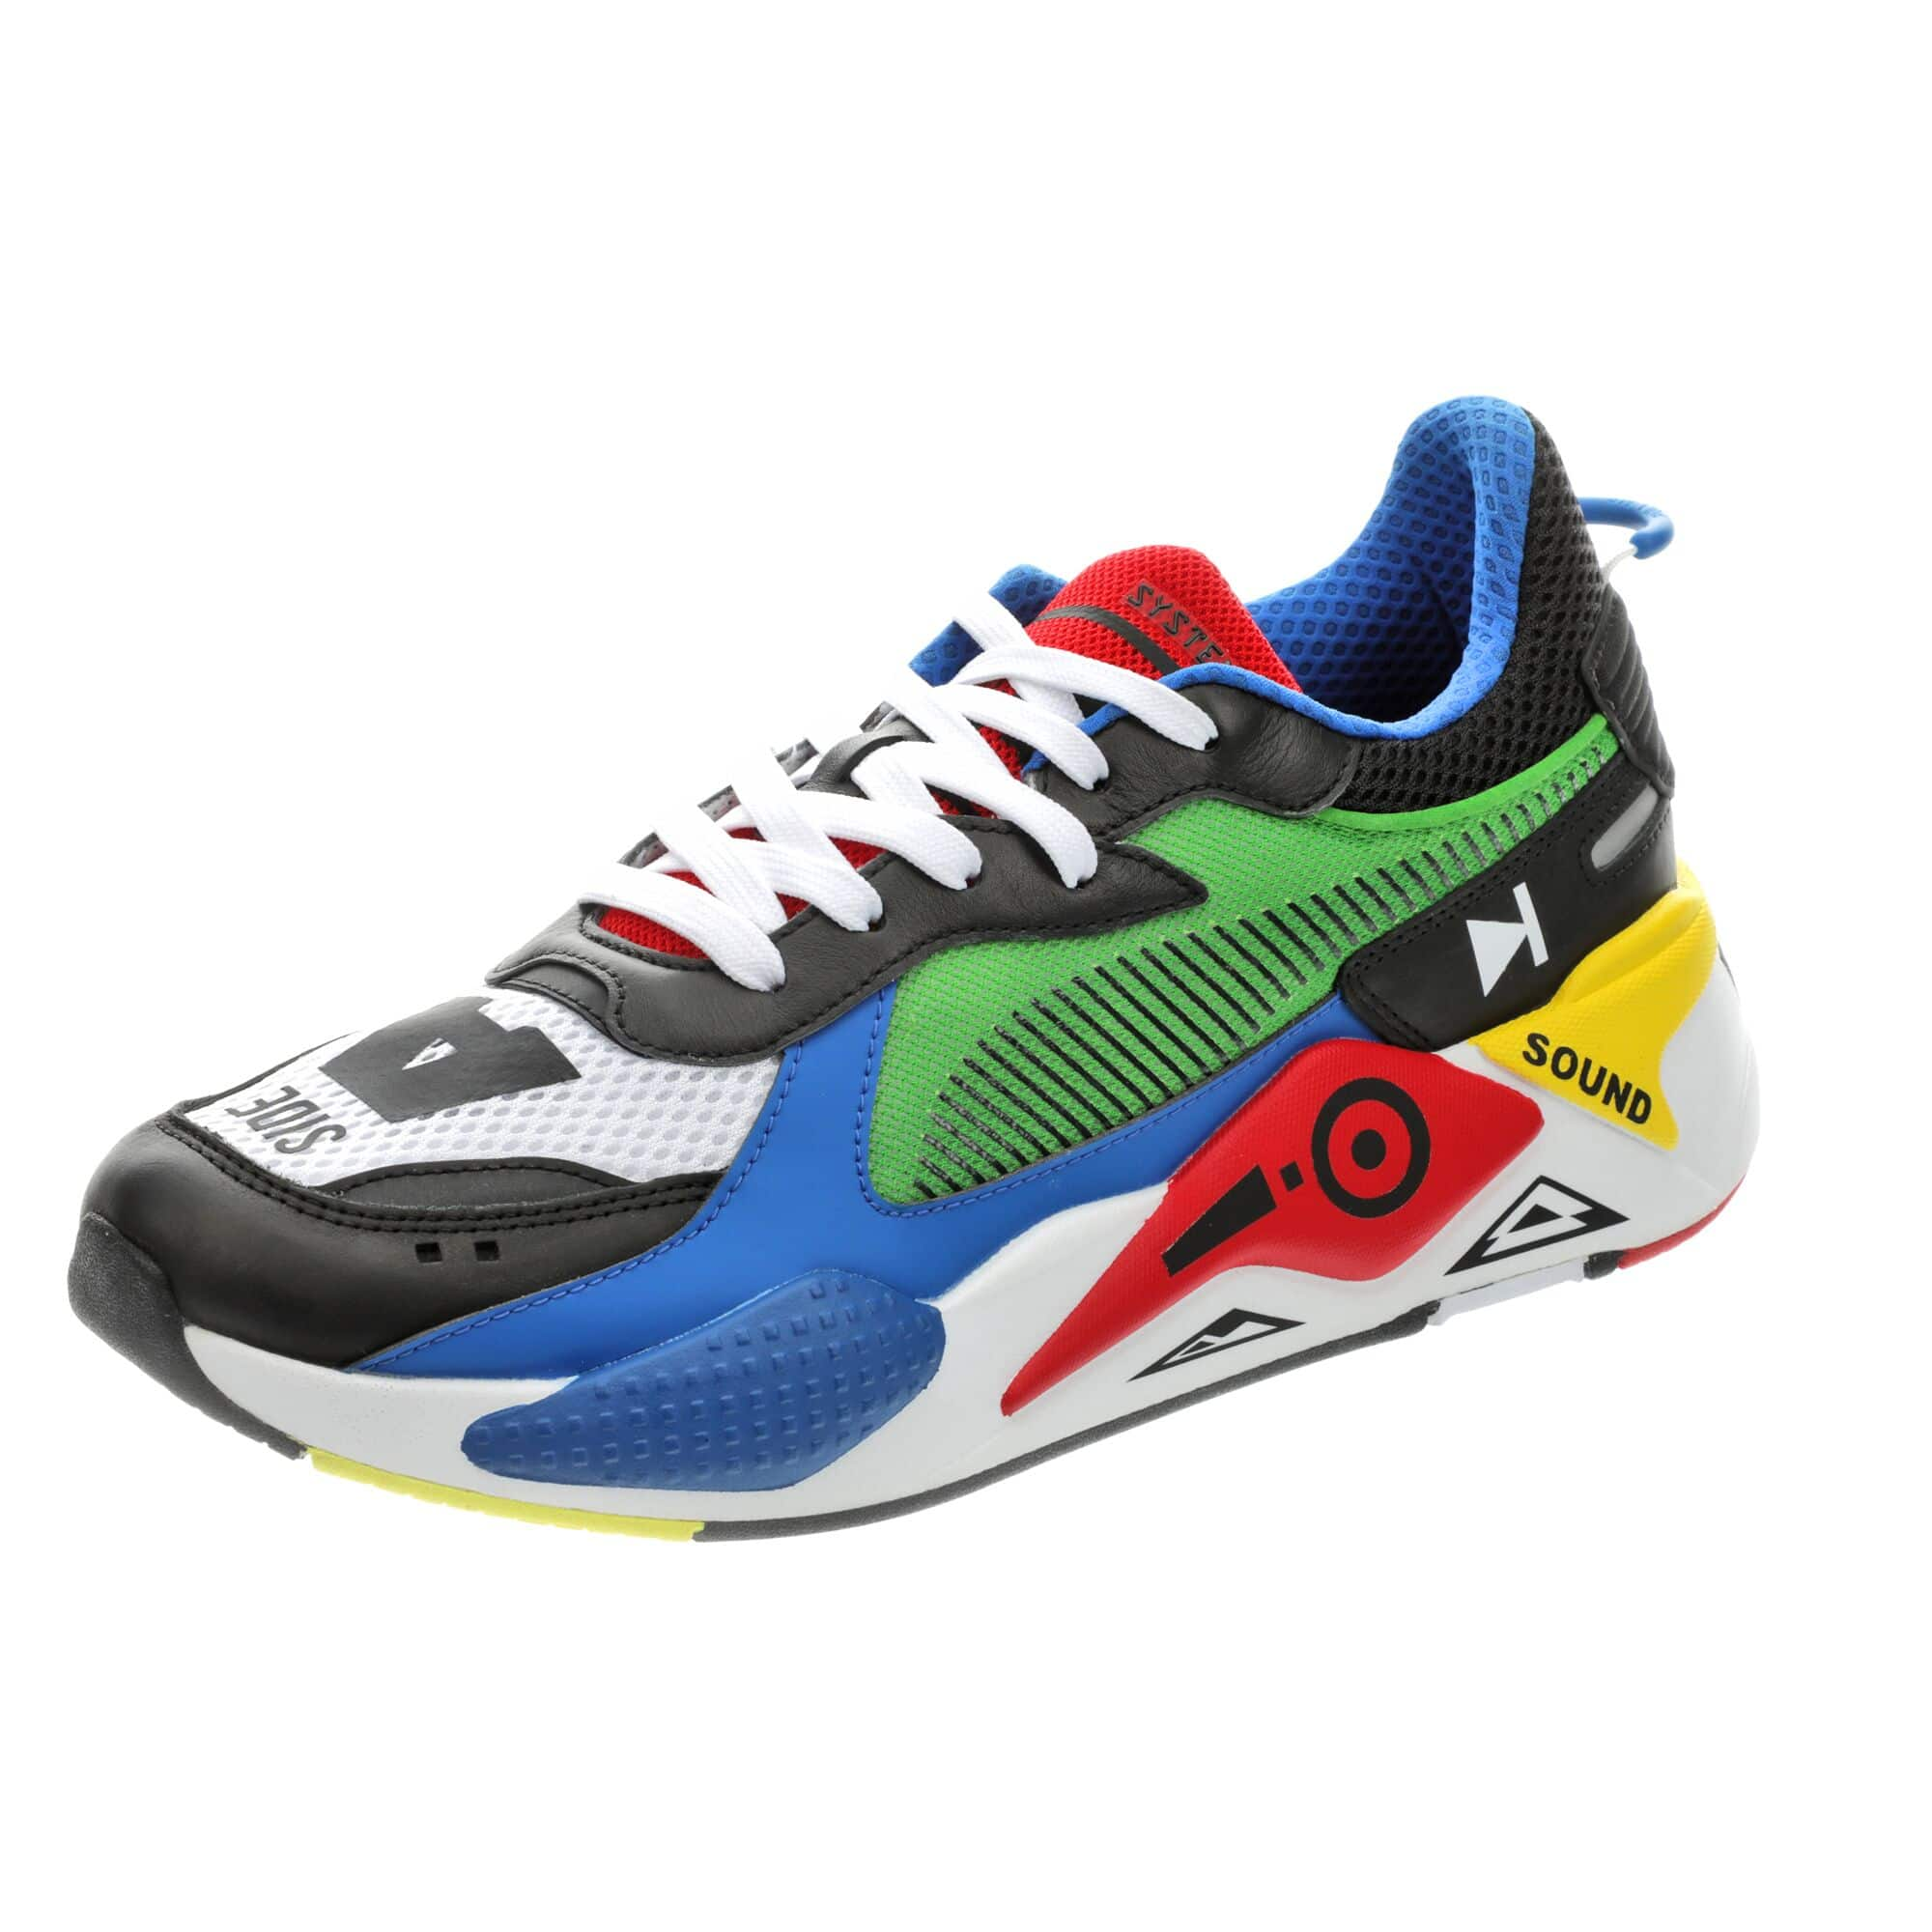 The Puma x Alexander John RS-X Mixtape sneakers are now on sale 14